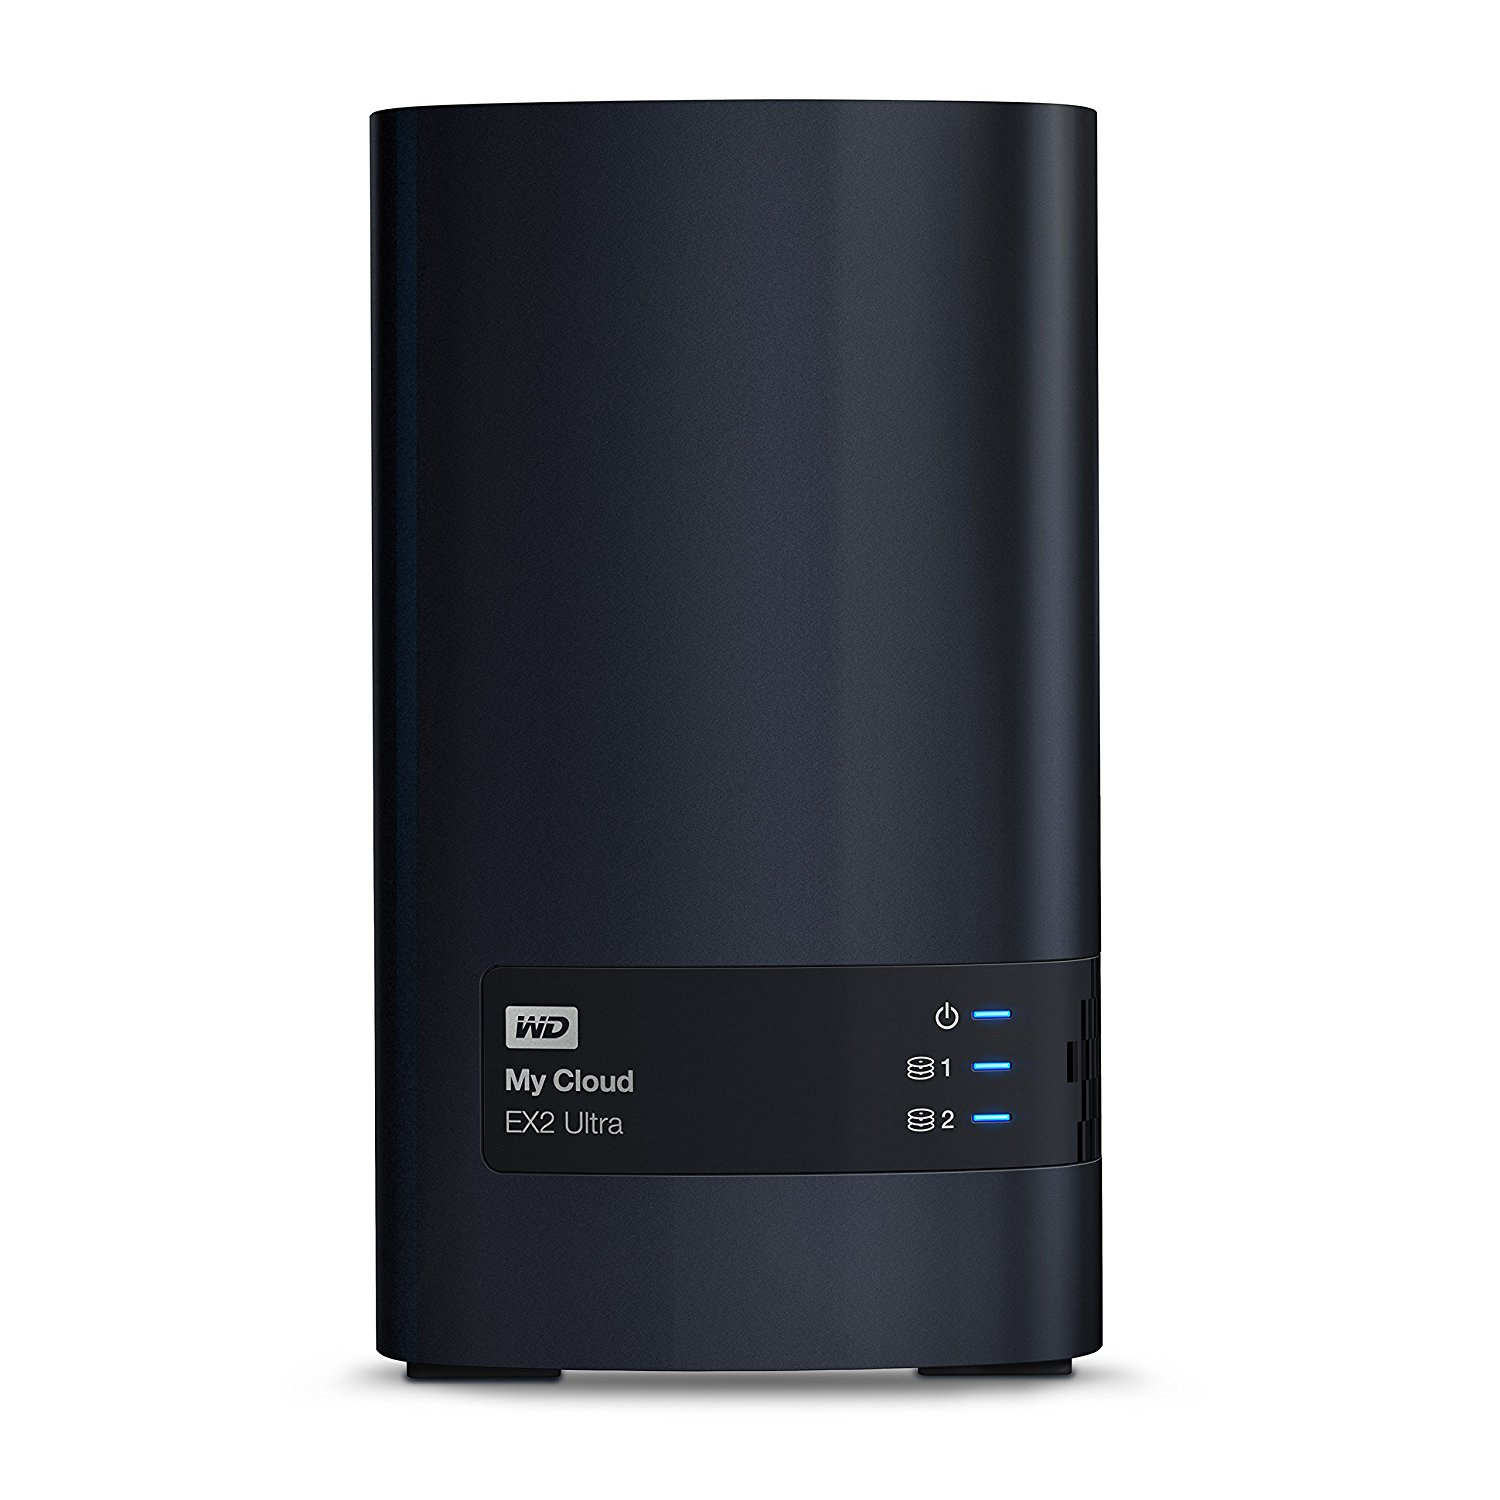 WD MY CLOUD EX2 ULTRA 4TB External HDD